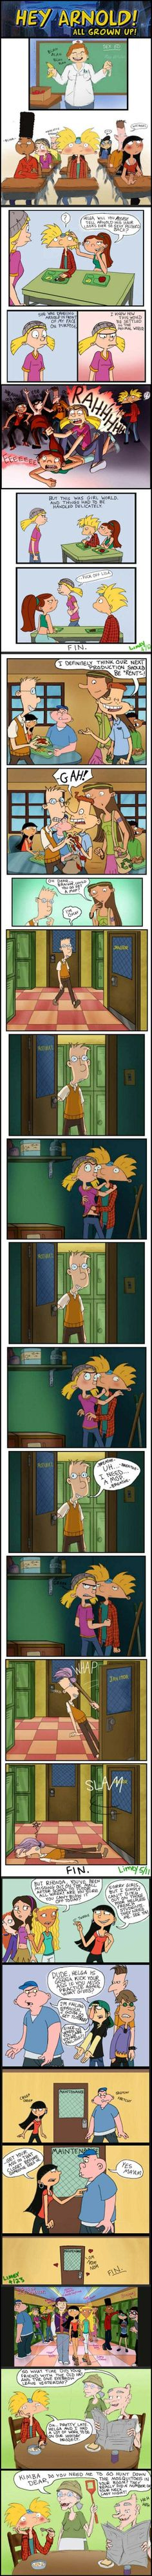 Hey Arnold characters as teenagers - One Stop Humor: Funny Pictures and Videos!